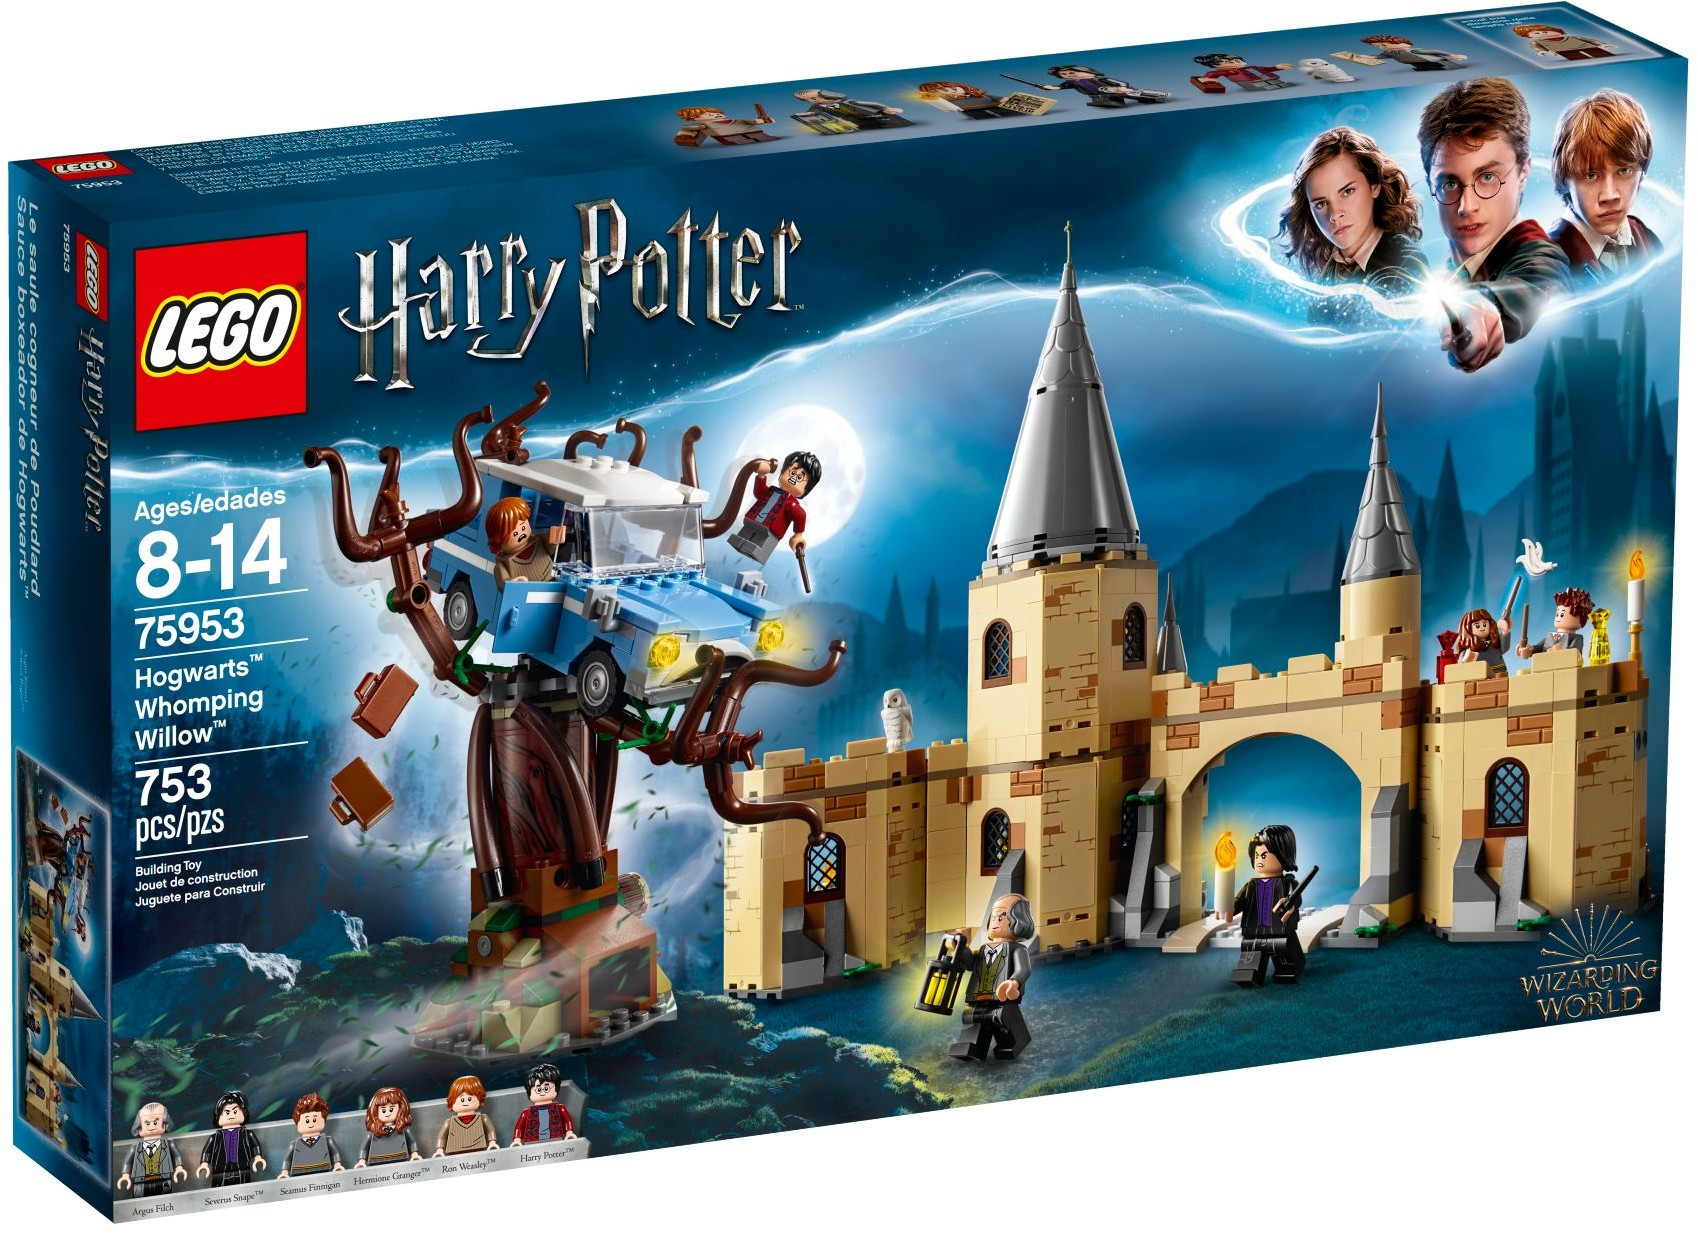 lego-harry-potter-hogwarts-whomping-willow-75953-box-2018 zusammengebaut.com